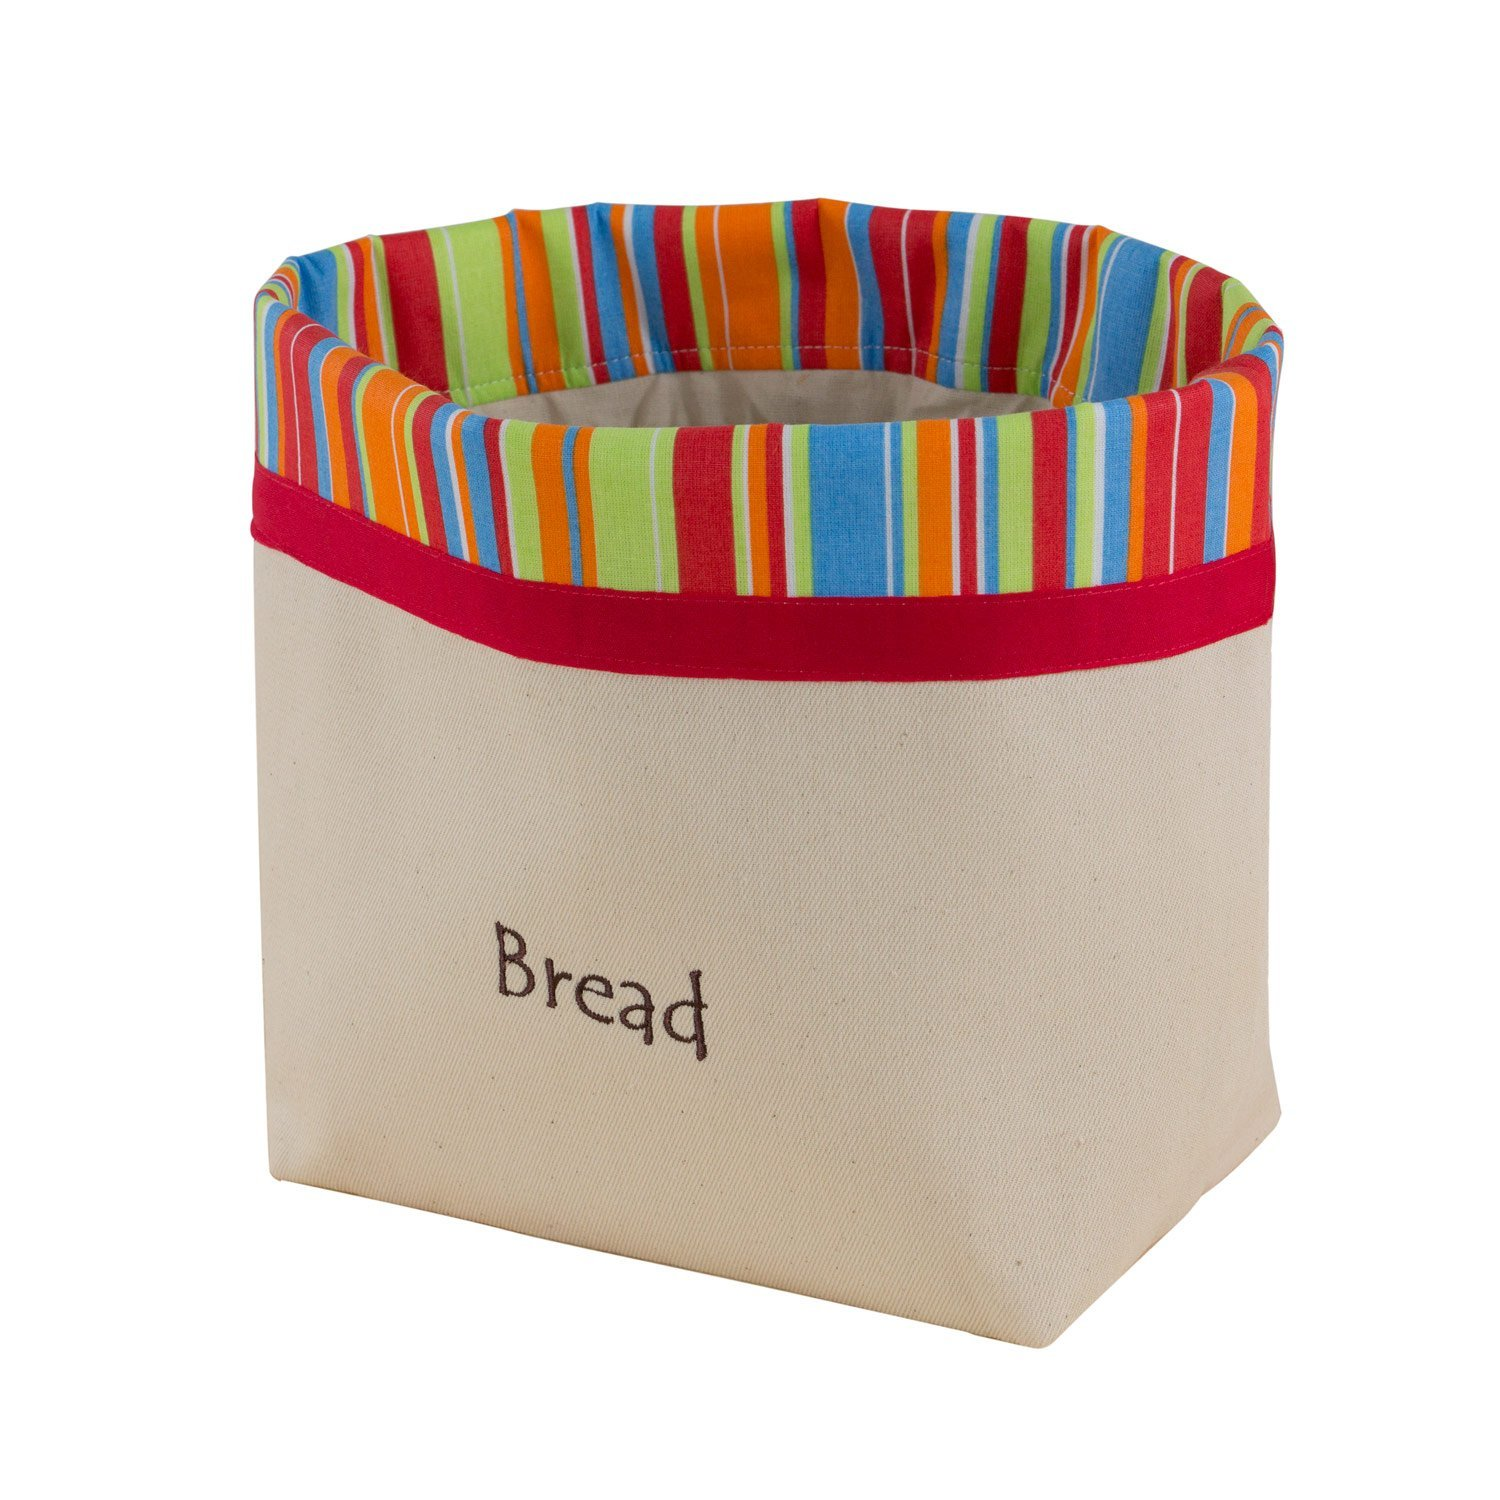 Bread & Kitchen Storage